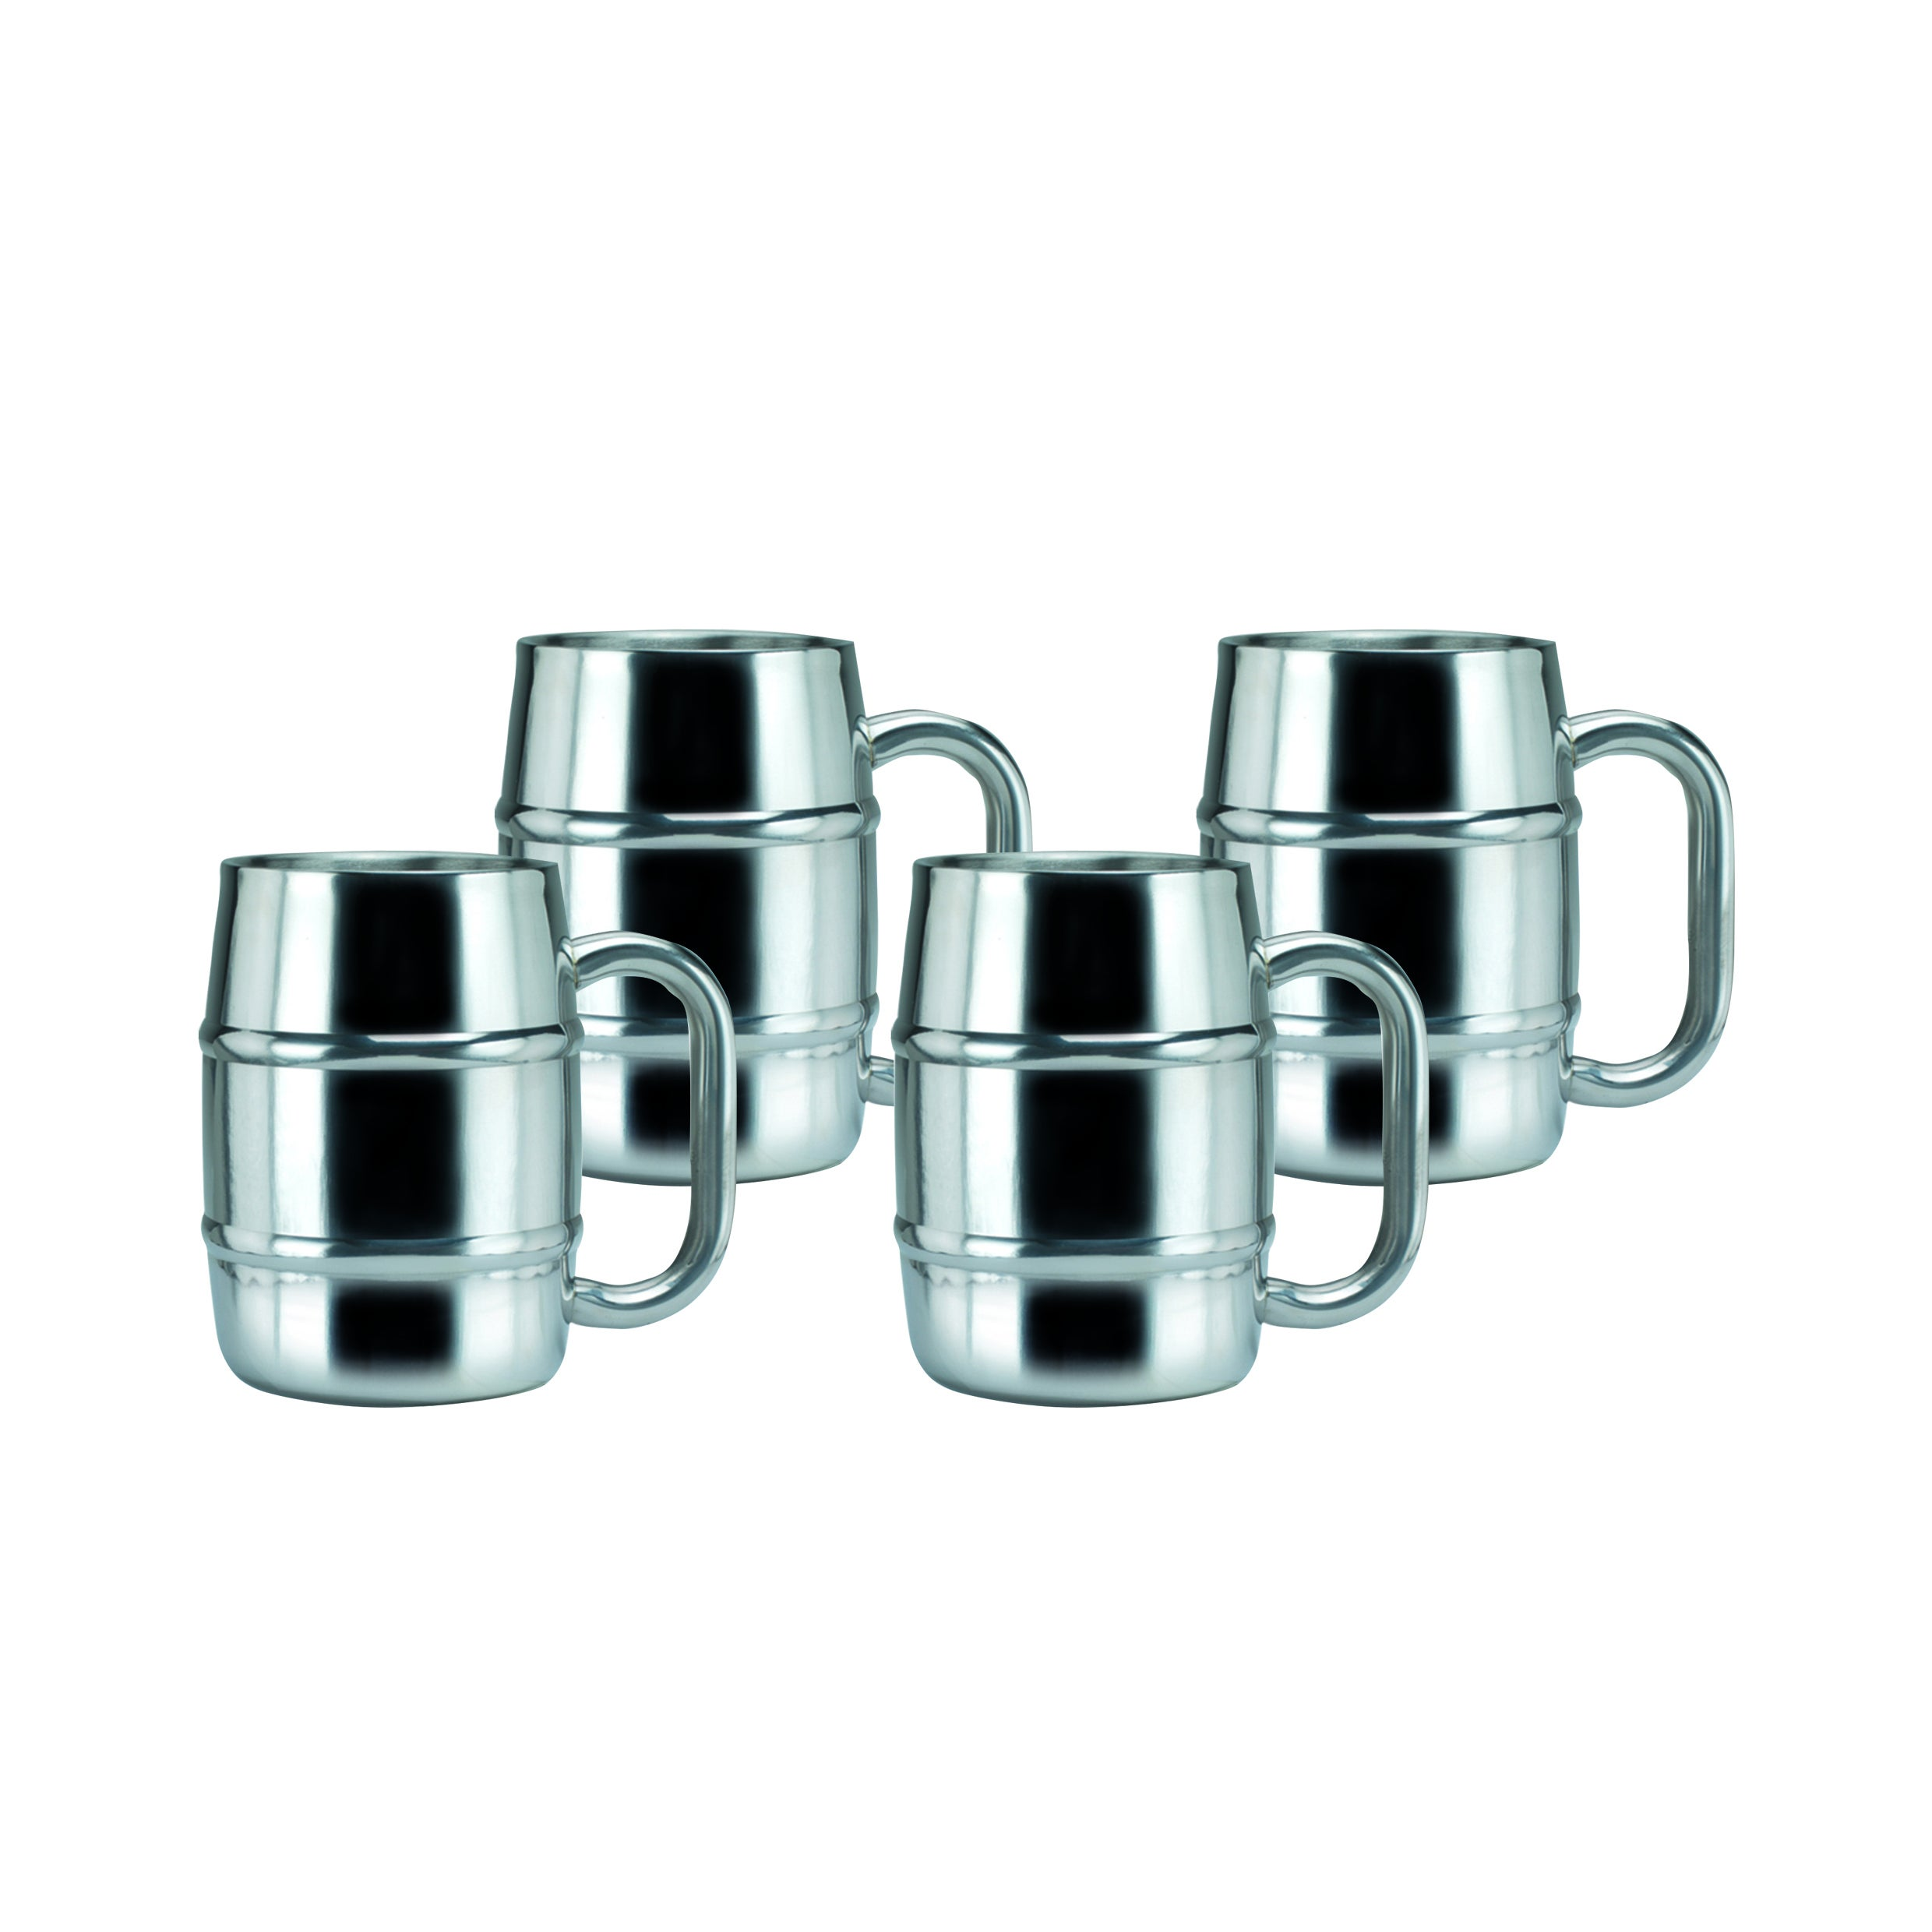 Old Dutch Keep-Kool 16.9-ounce Double-wall Stainless Steel Mugs (Set of 4) at Sears.com